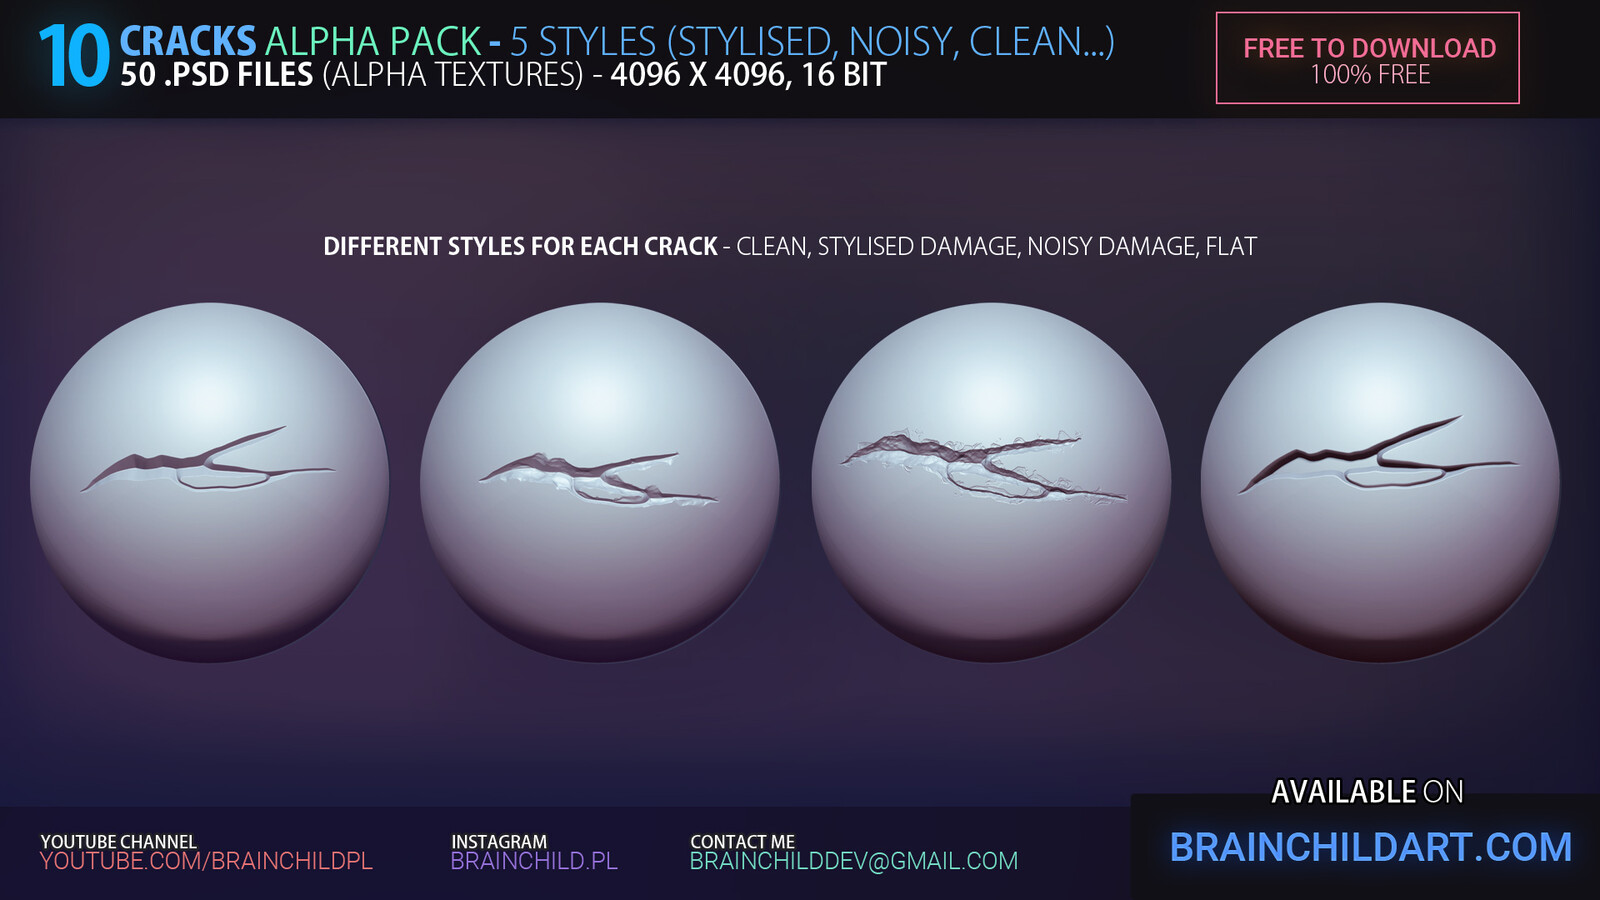 GRAB IT https://www.artstation.com/a/578230 |  [FREE] 10 Cracks ALPHA PACK (+Video How to install) - 50 .PSD files | 5 styles (Clean, Stylised Damage, Noisy Damage...) | Zbrush, Blender & Substance! Damage, Cracks Stylised Alpha Textures